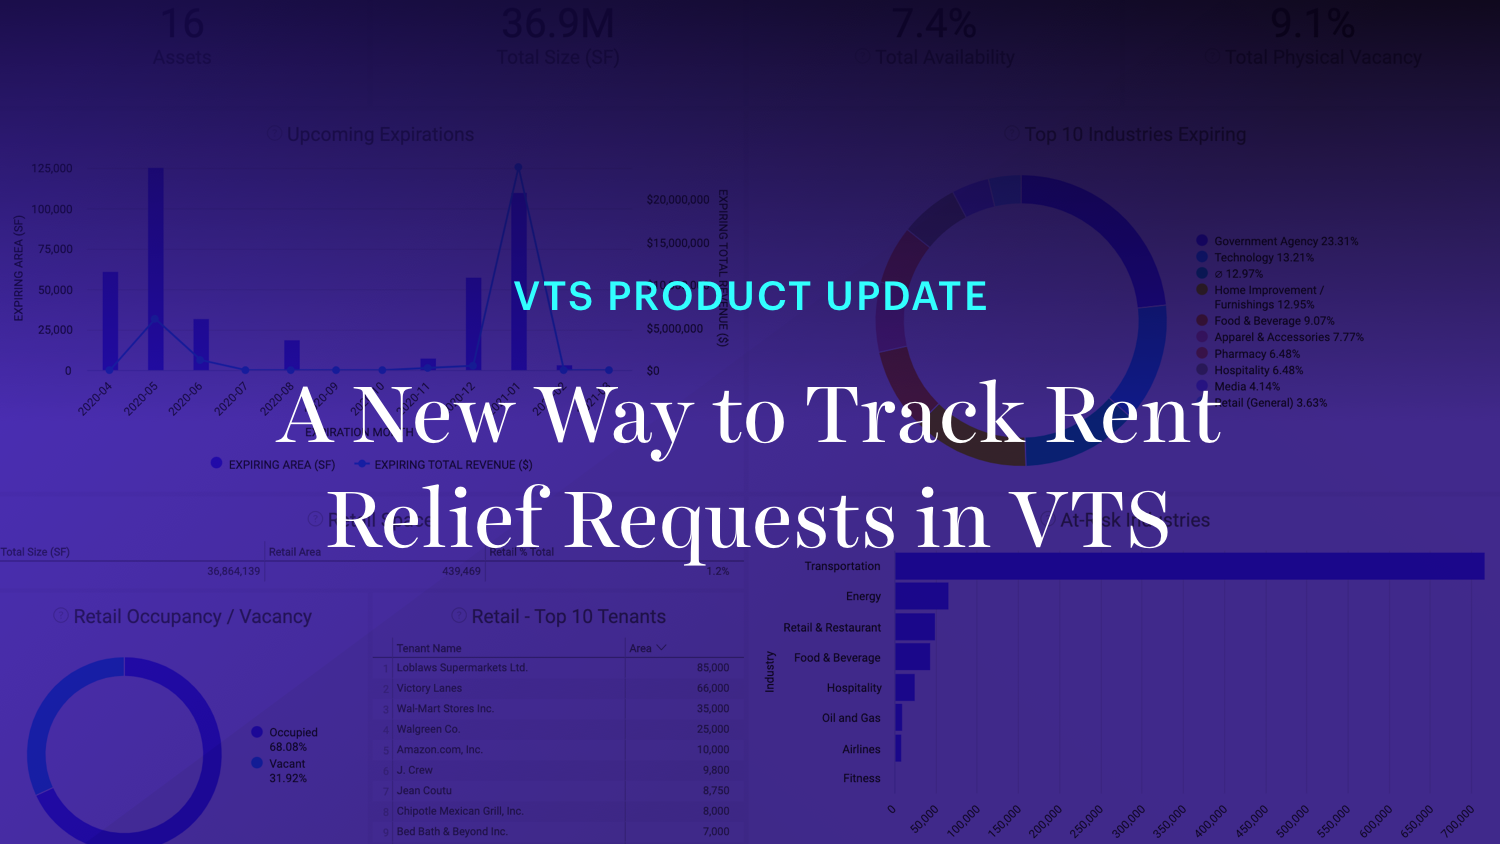 A New Way to Track Rent Relief Requests in VTS